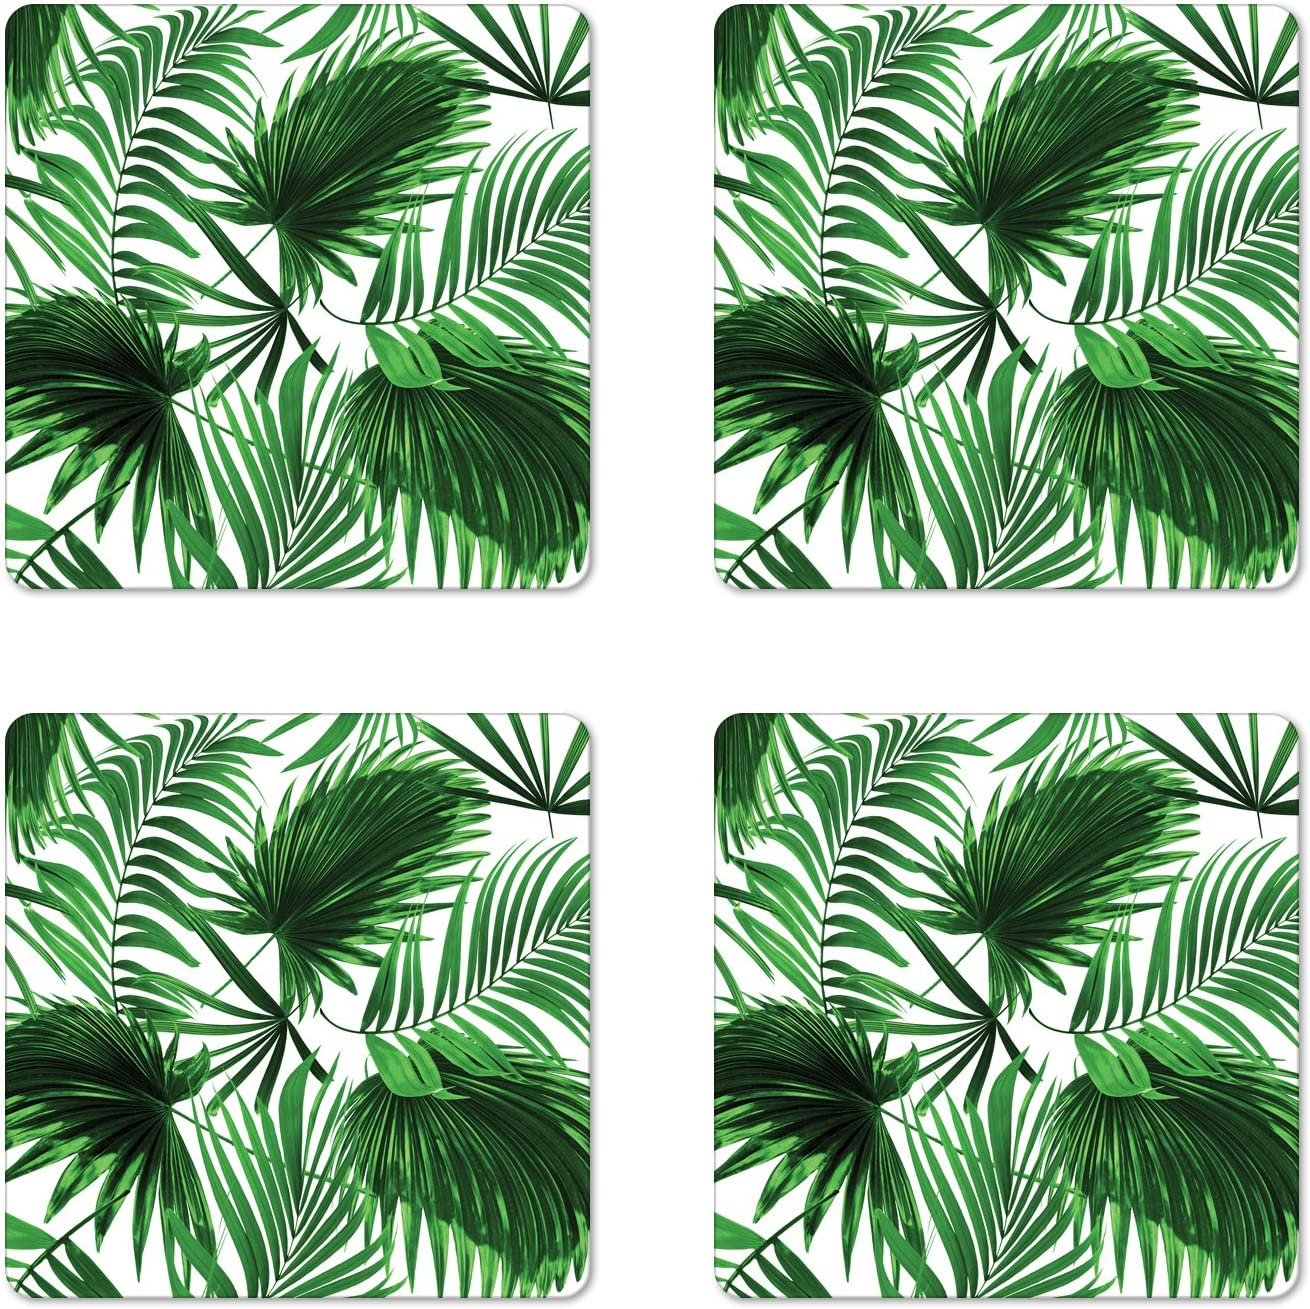 Amazon Com Ambesonne Palm Leaf Coaster Set Of 4 Realistic Vivid Leaves Of Palm Tree Growth Ecology Botany Themed Print Square Hardboard Gloss Coasters Standard Size Fern Green Coasters